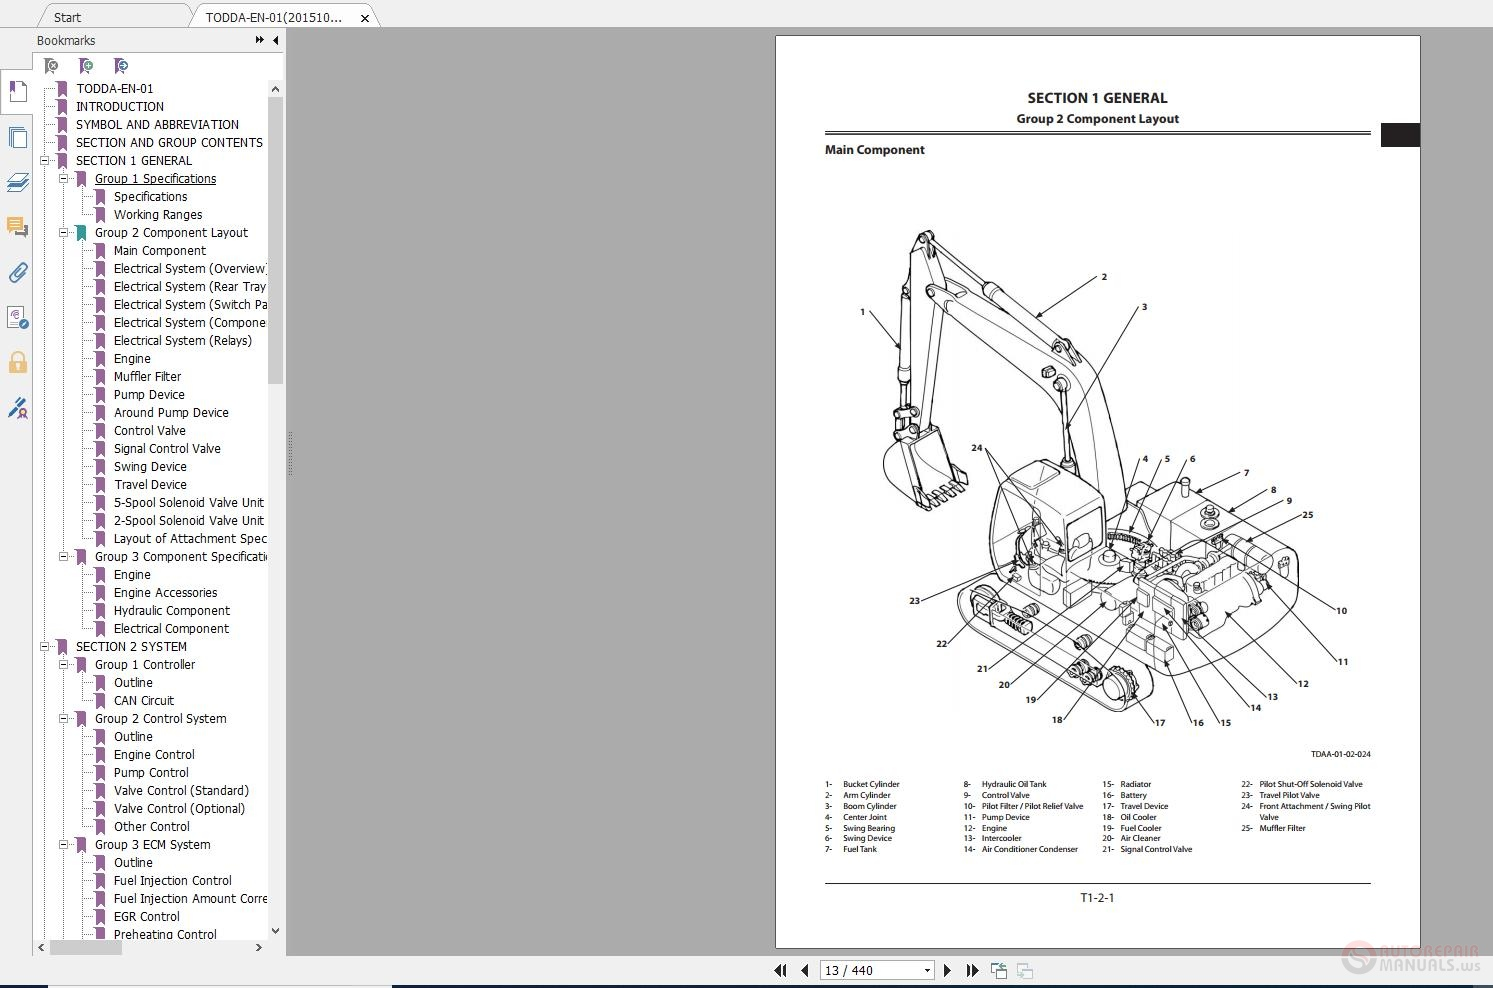 Autorepairsoftware  Hitachi Workshop Technical Manual And Wiring Diagram Dvd Full Download